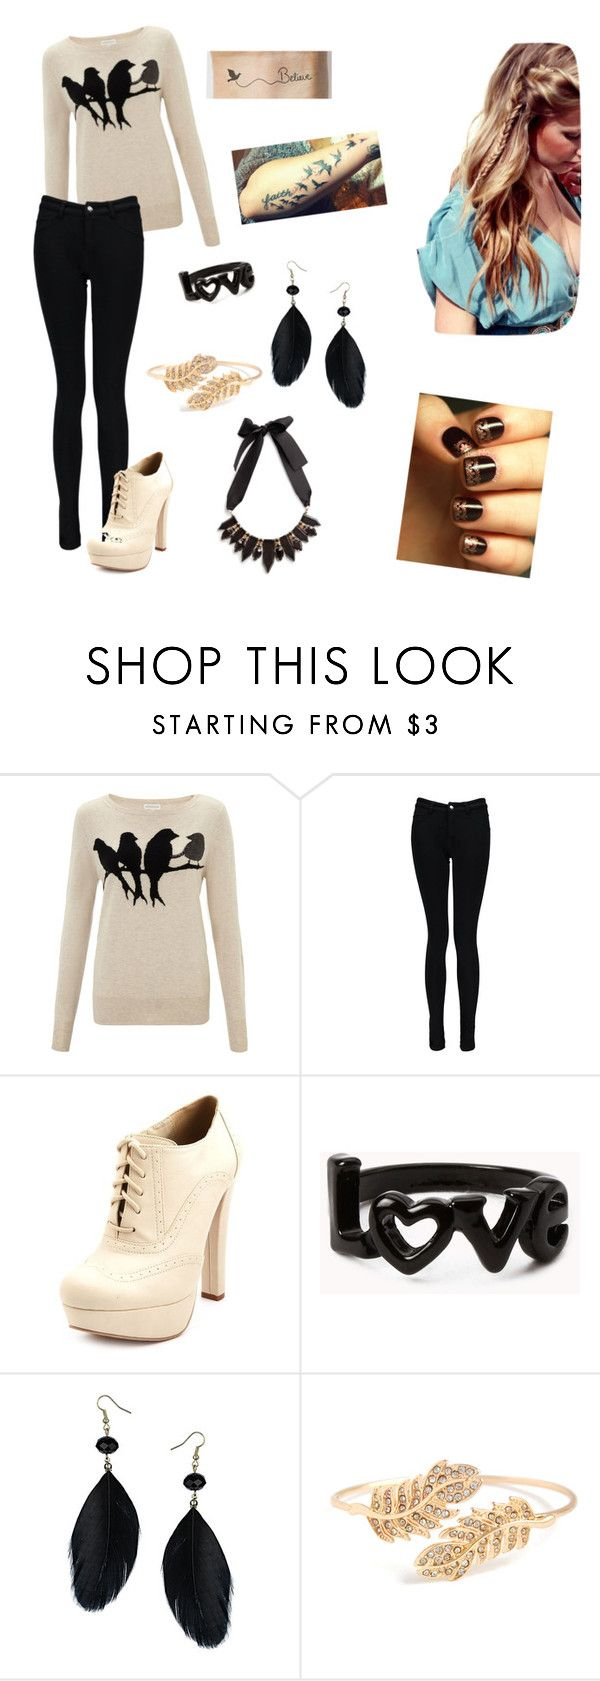 """""""Breaking Free"""" by arrianamarie ❤ liked on Polyvore featuring Monsoon, Boohoo, Charlotte Russe, Forever 21, Dorothy Perkins and MANGO"""